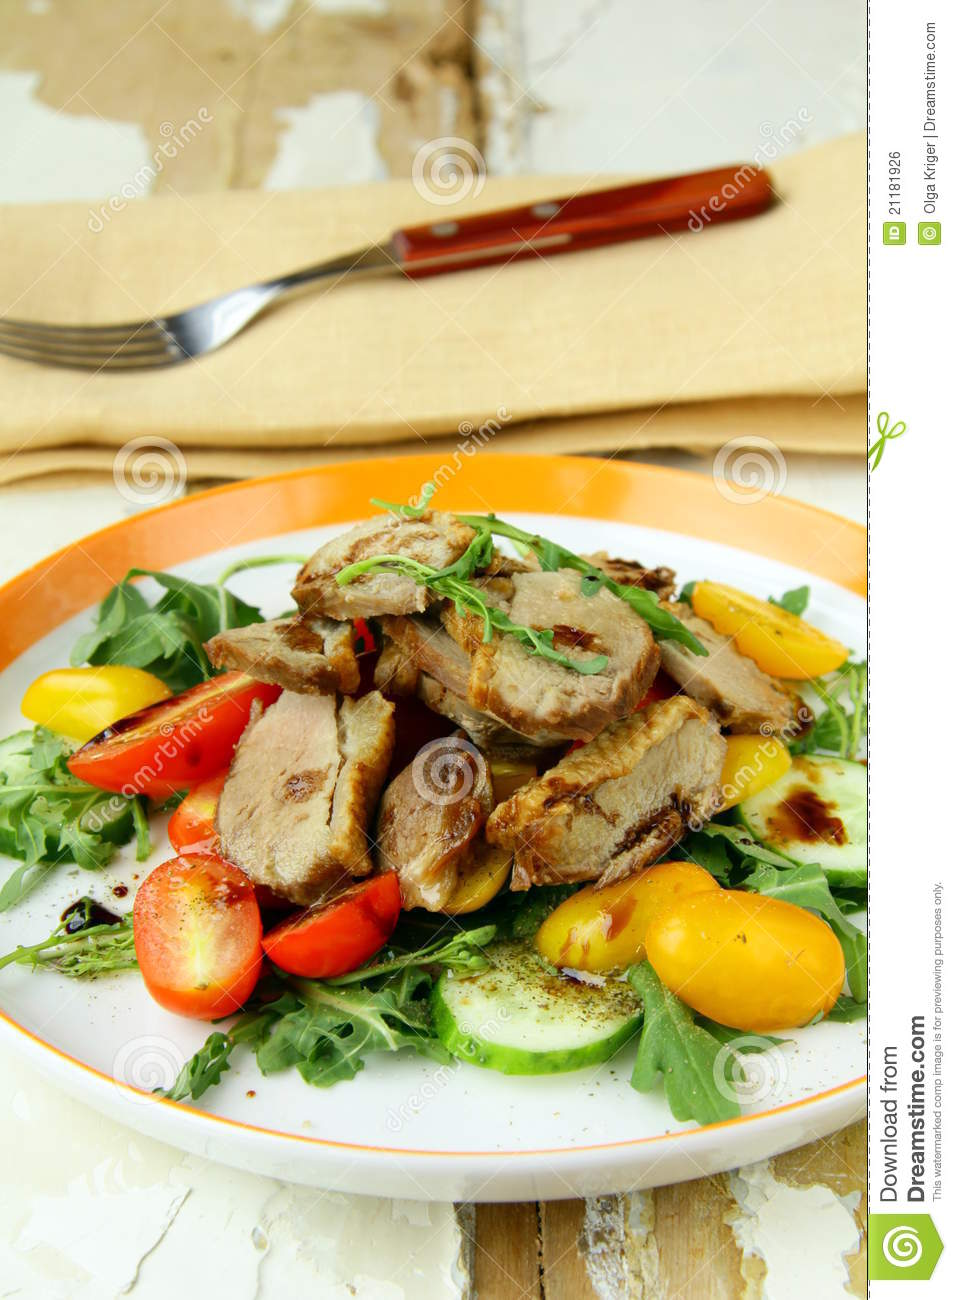 Salad with duck breast, cherry tomatoes